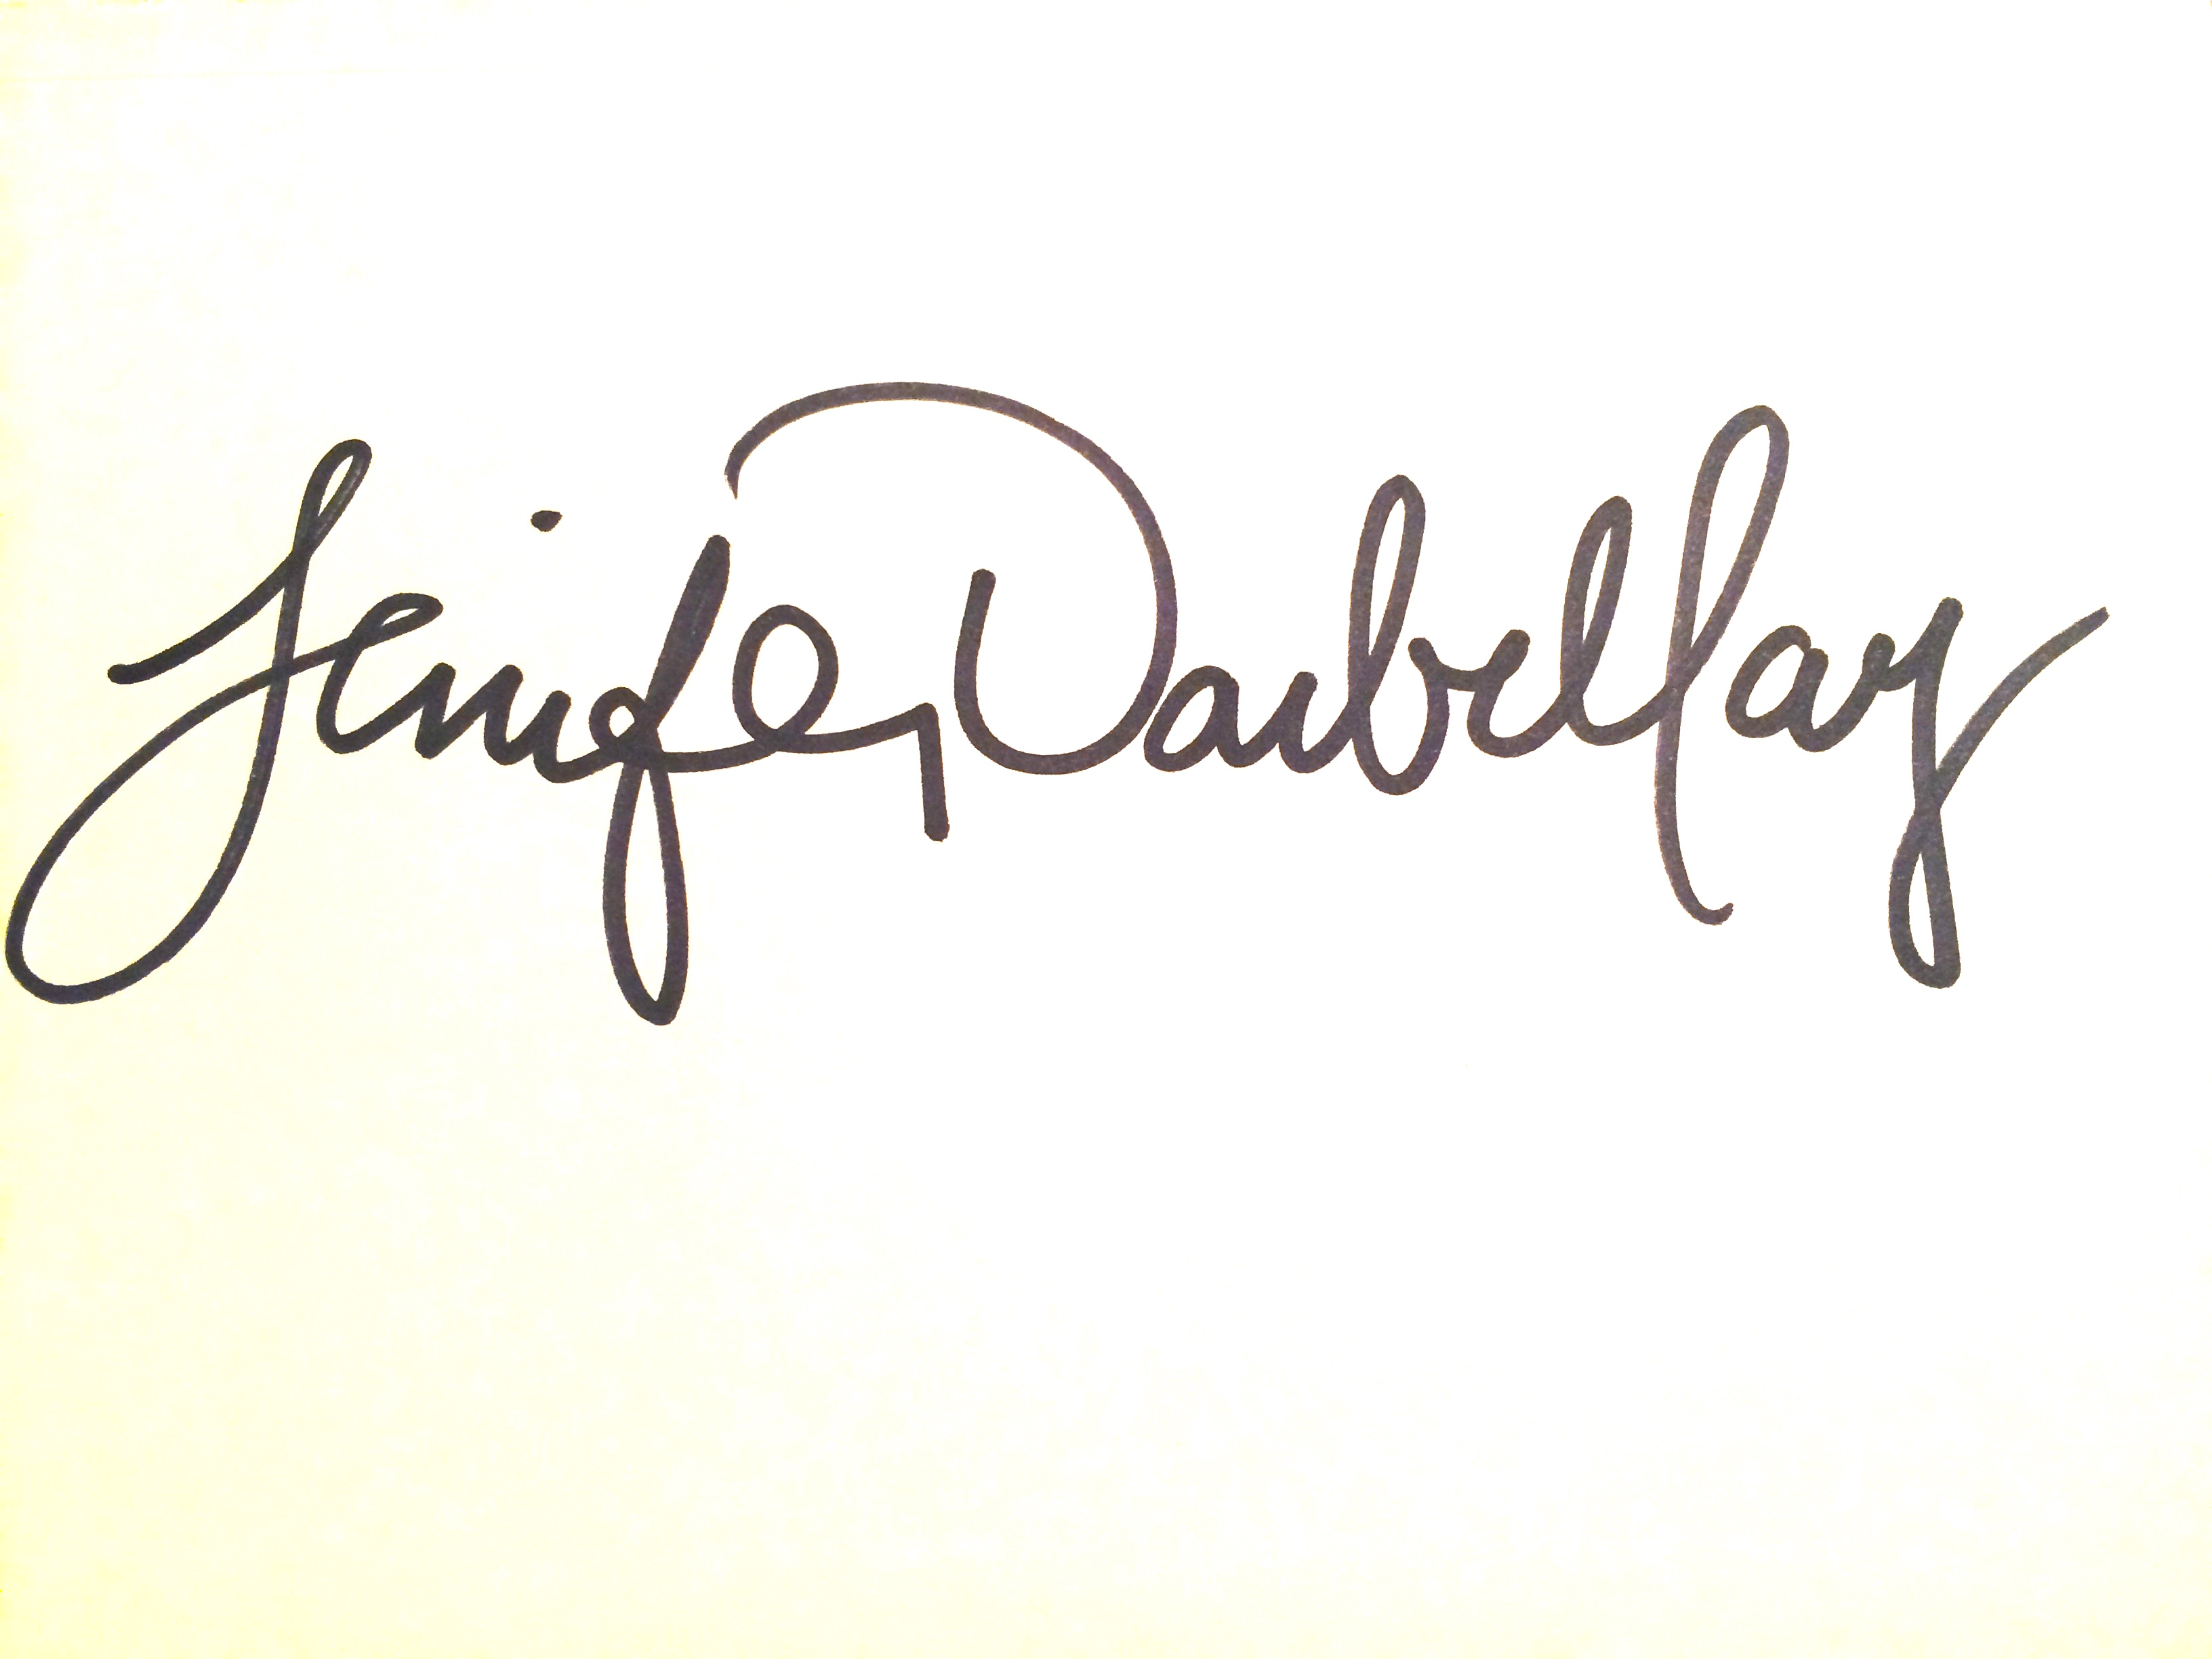 Jenifer Darbellay Signature